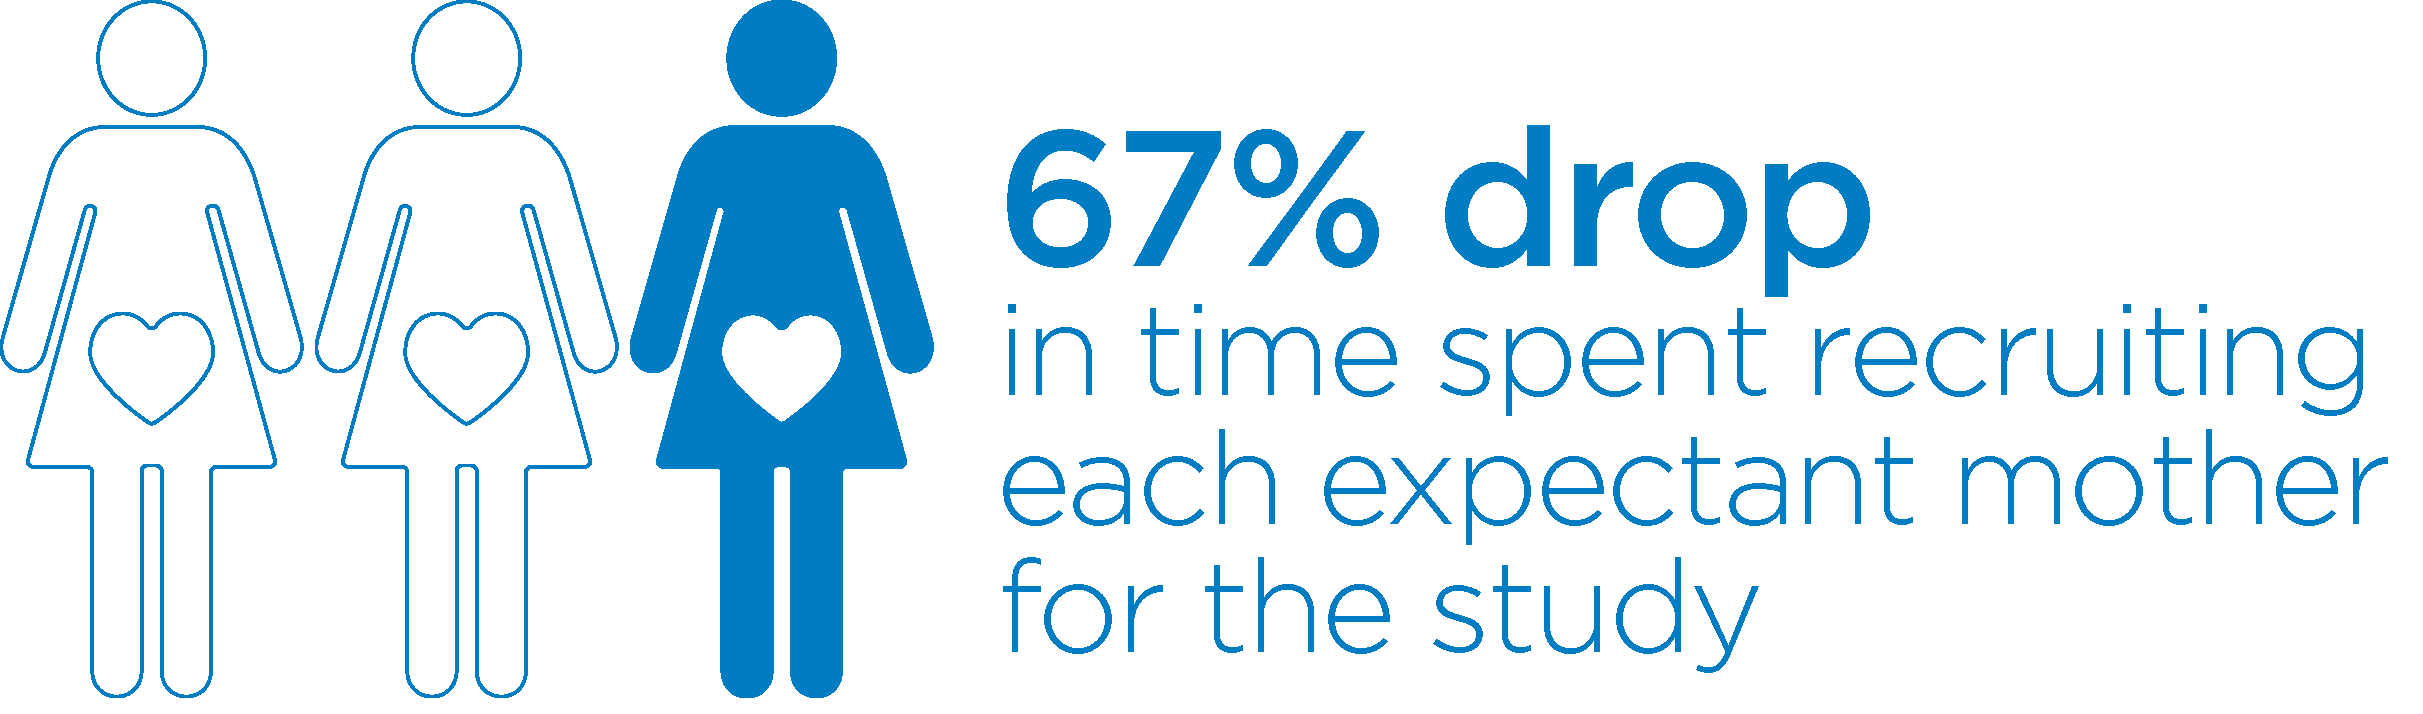 67 percent drop in time spent recruiting each expectant mother for the study